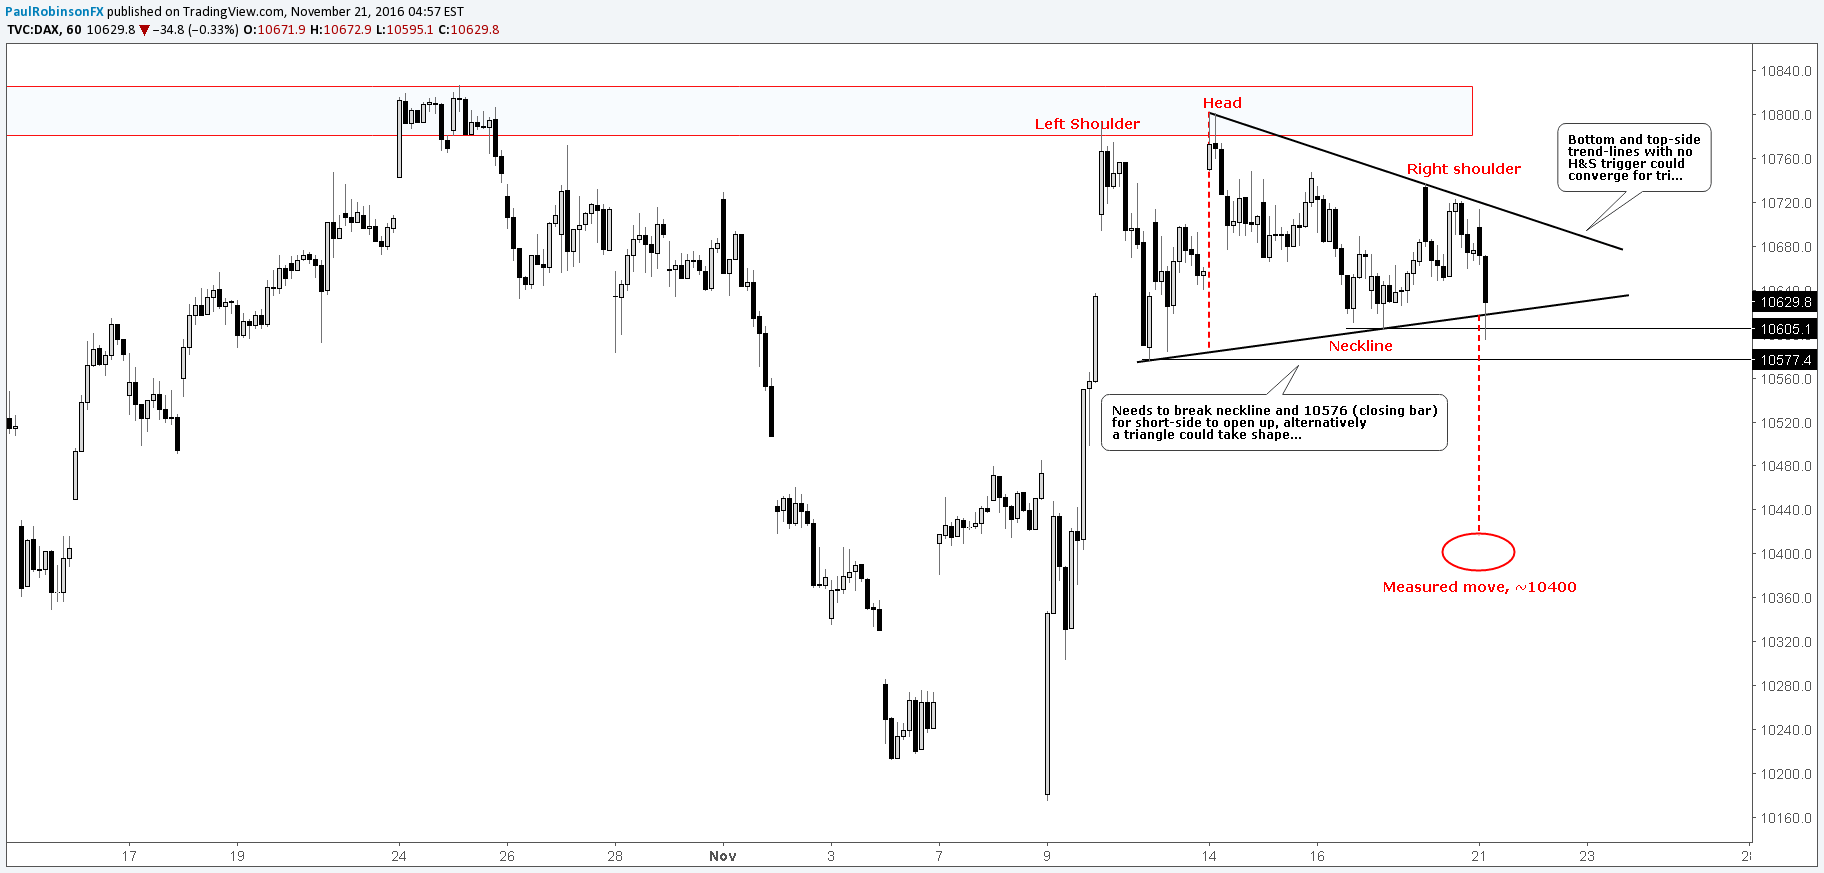 DAX Technical Update: Short-term Levels & Chart Pattern(s